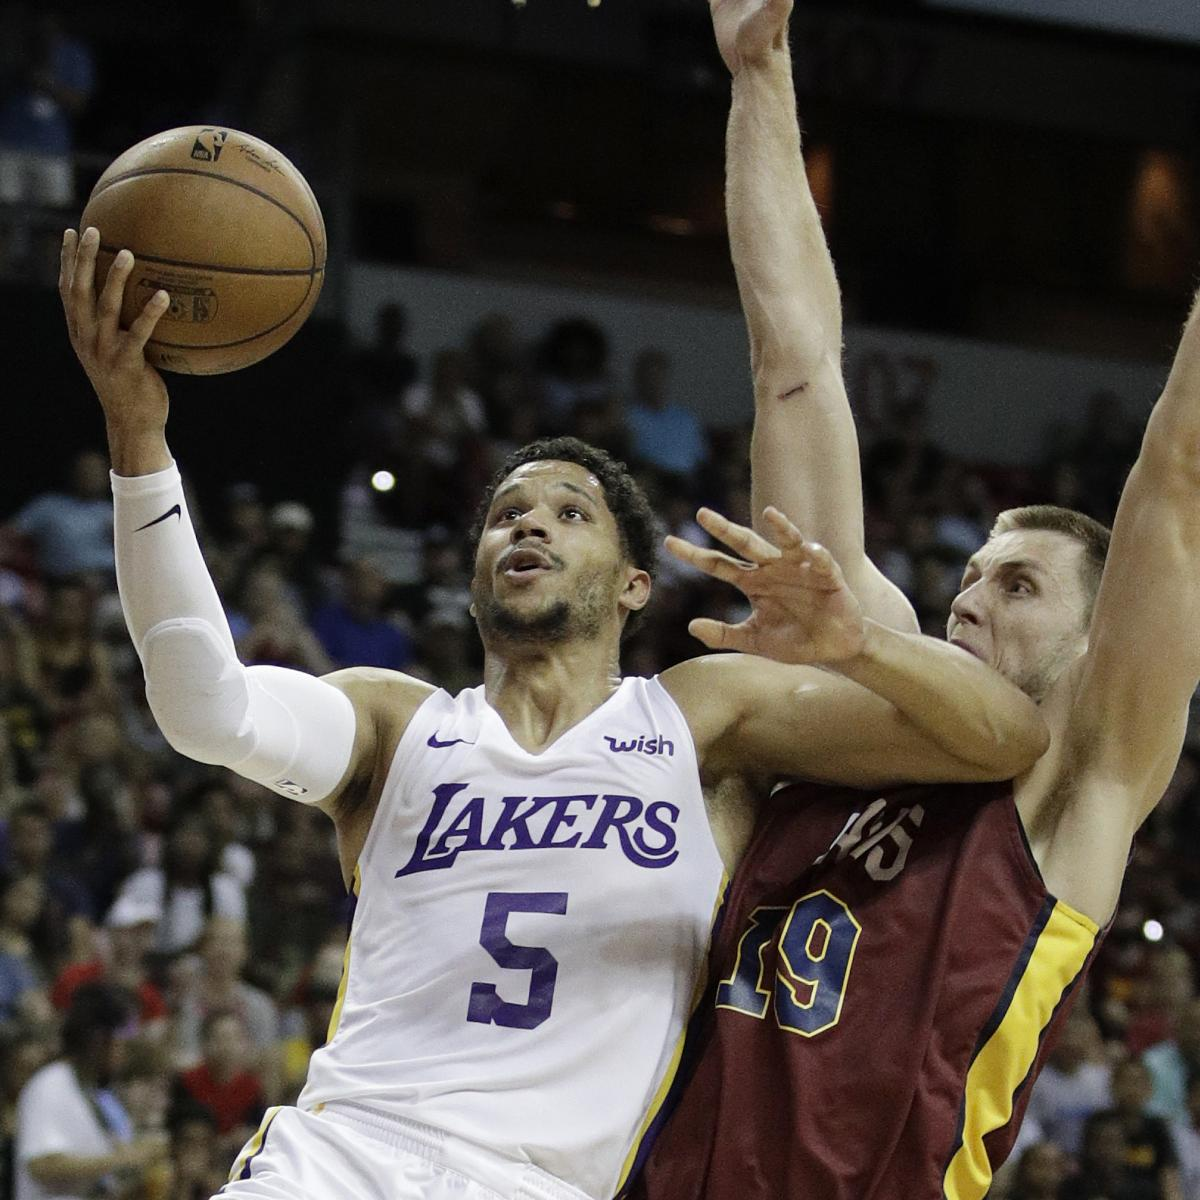 Blazers Vs Lakers: NBA Summer League 2018 Championship: Early Preview For